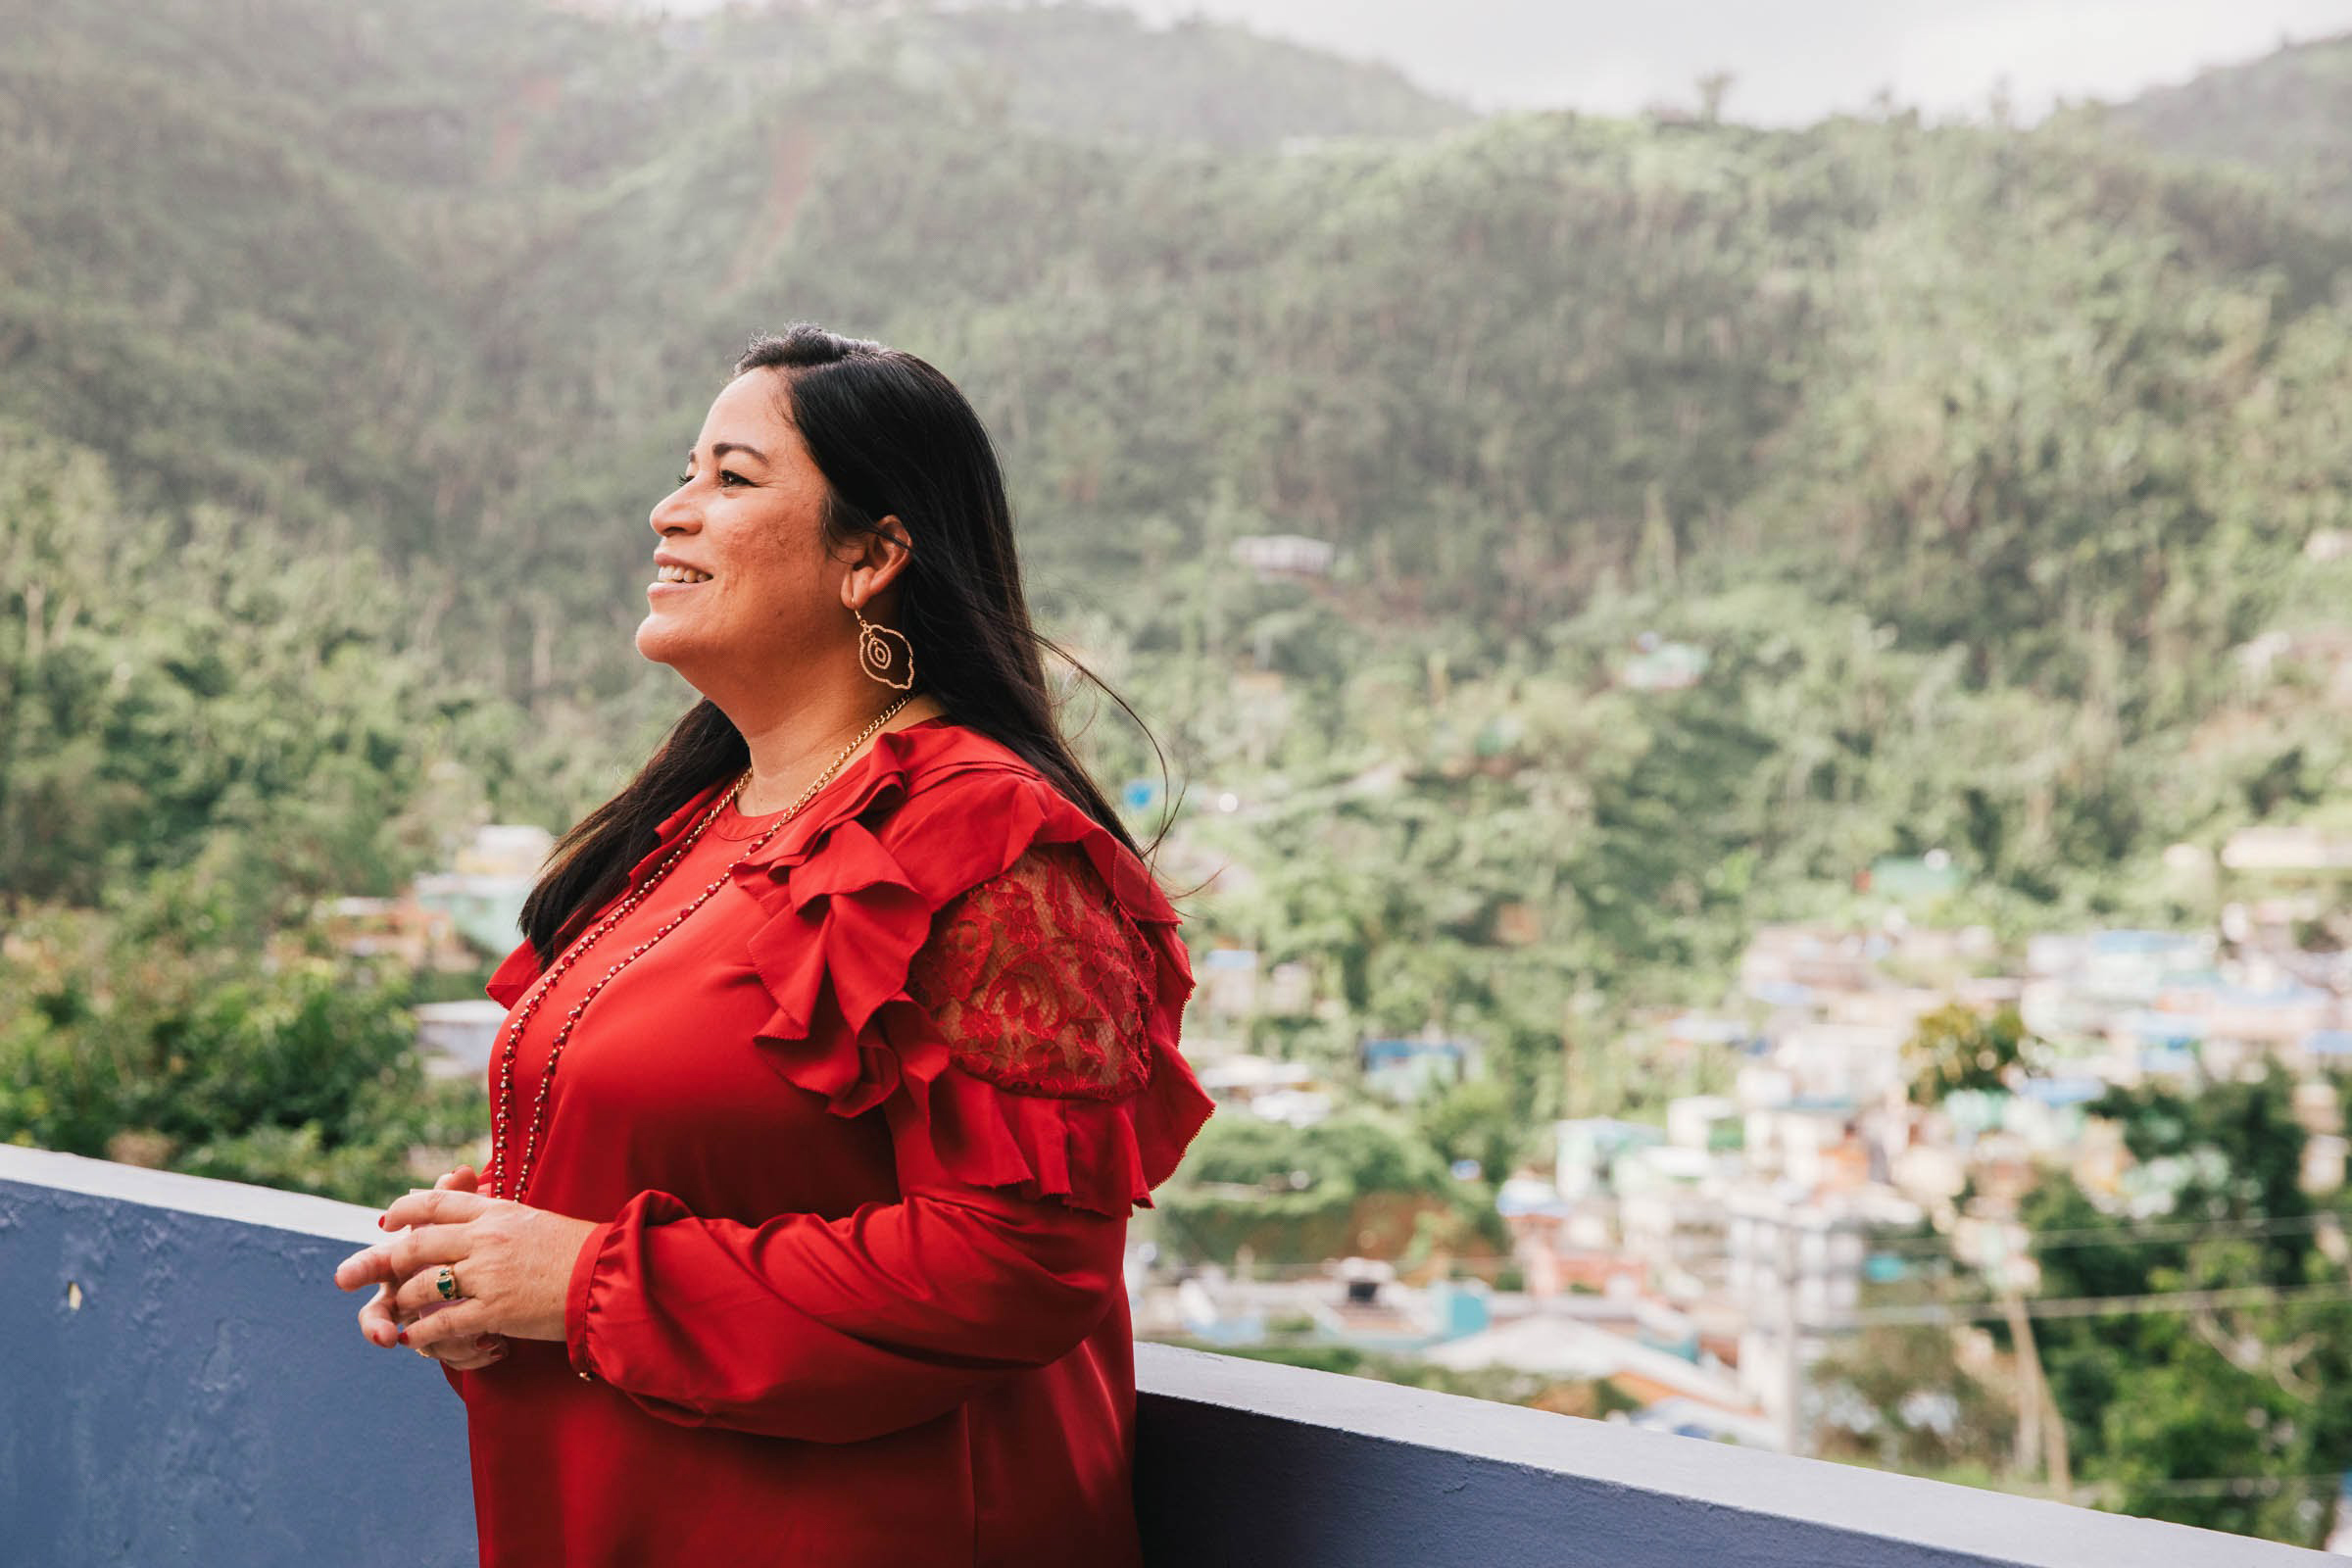 """Gloria del C. Amador Fernández, executive director of Salud Integral de la Montana Health Center, overlooks the mountain community of Naranjito on Dec. 17, 2017. During Hurricane Maria's high winds, the health center stayed open. """"We were the only ones providing care on the mountain,"""" she said. (Photo by Donnie Hedden for Direct Relief)"""